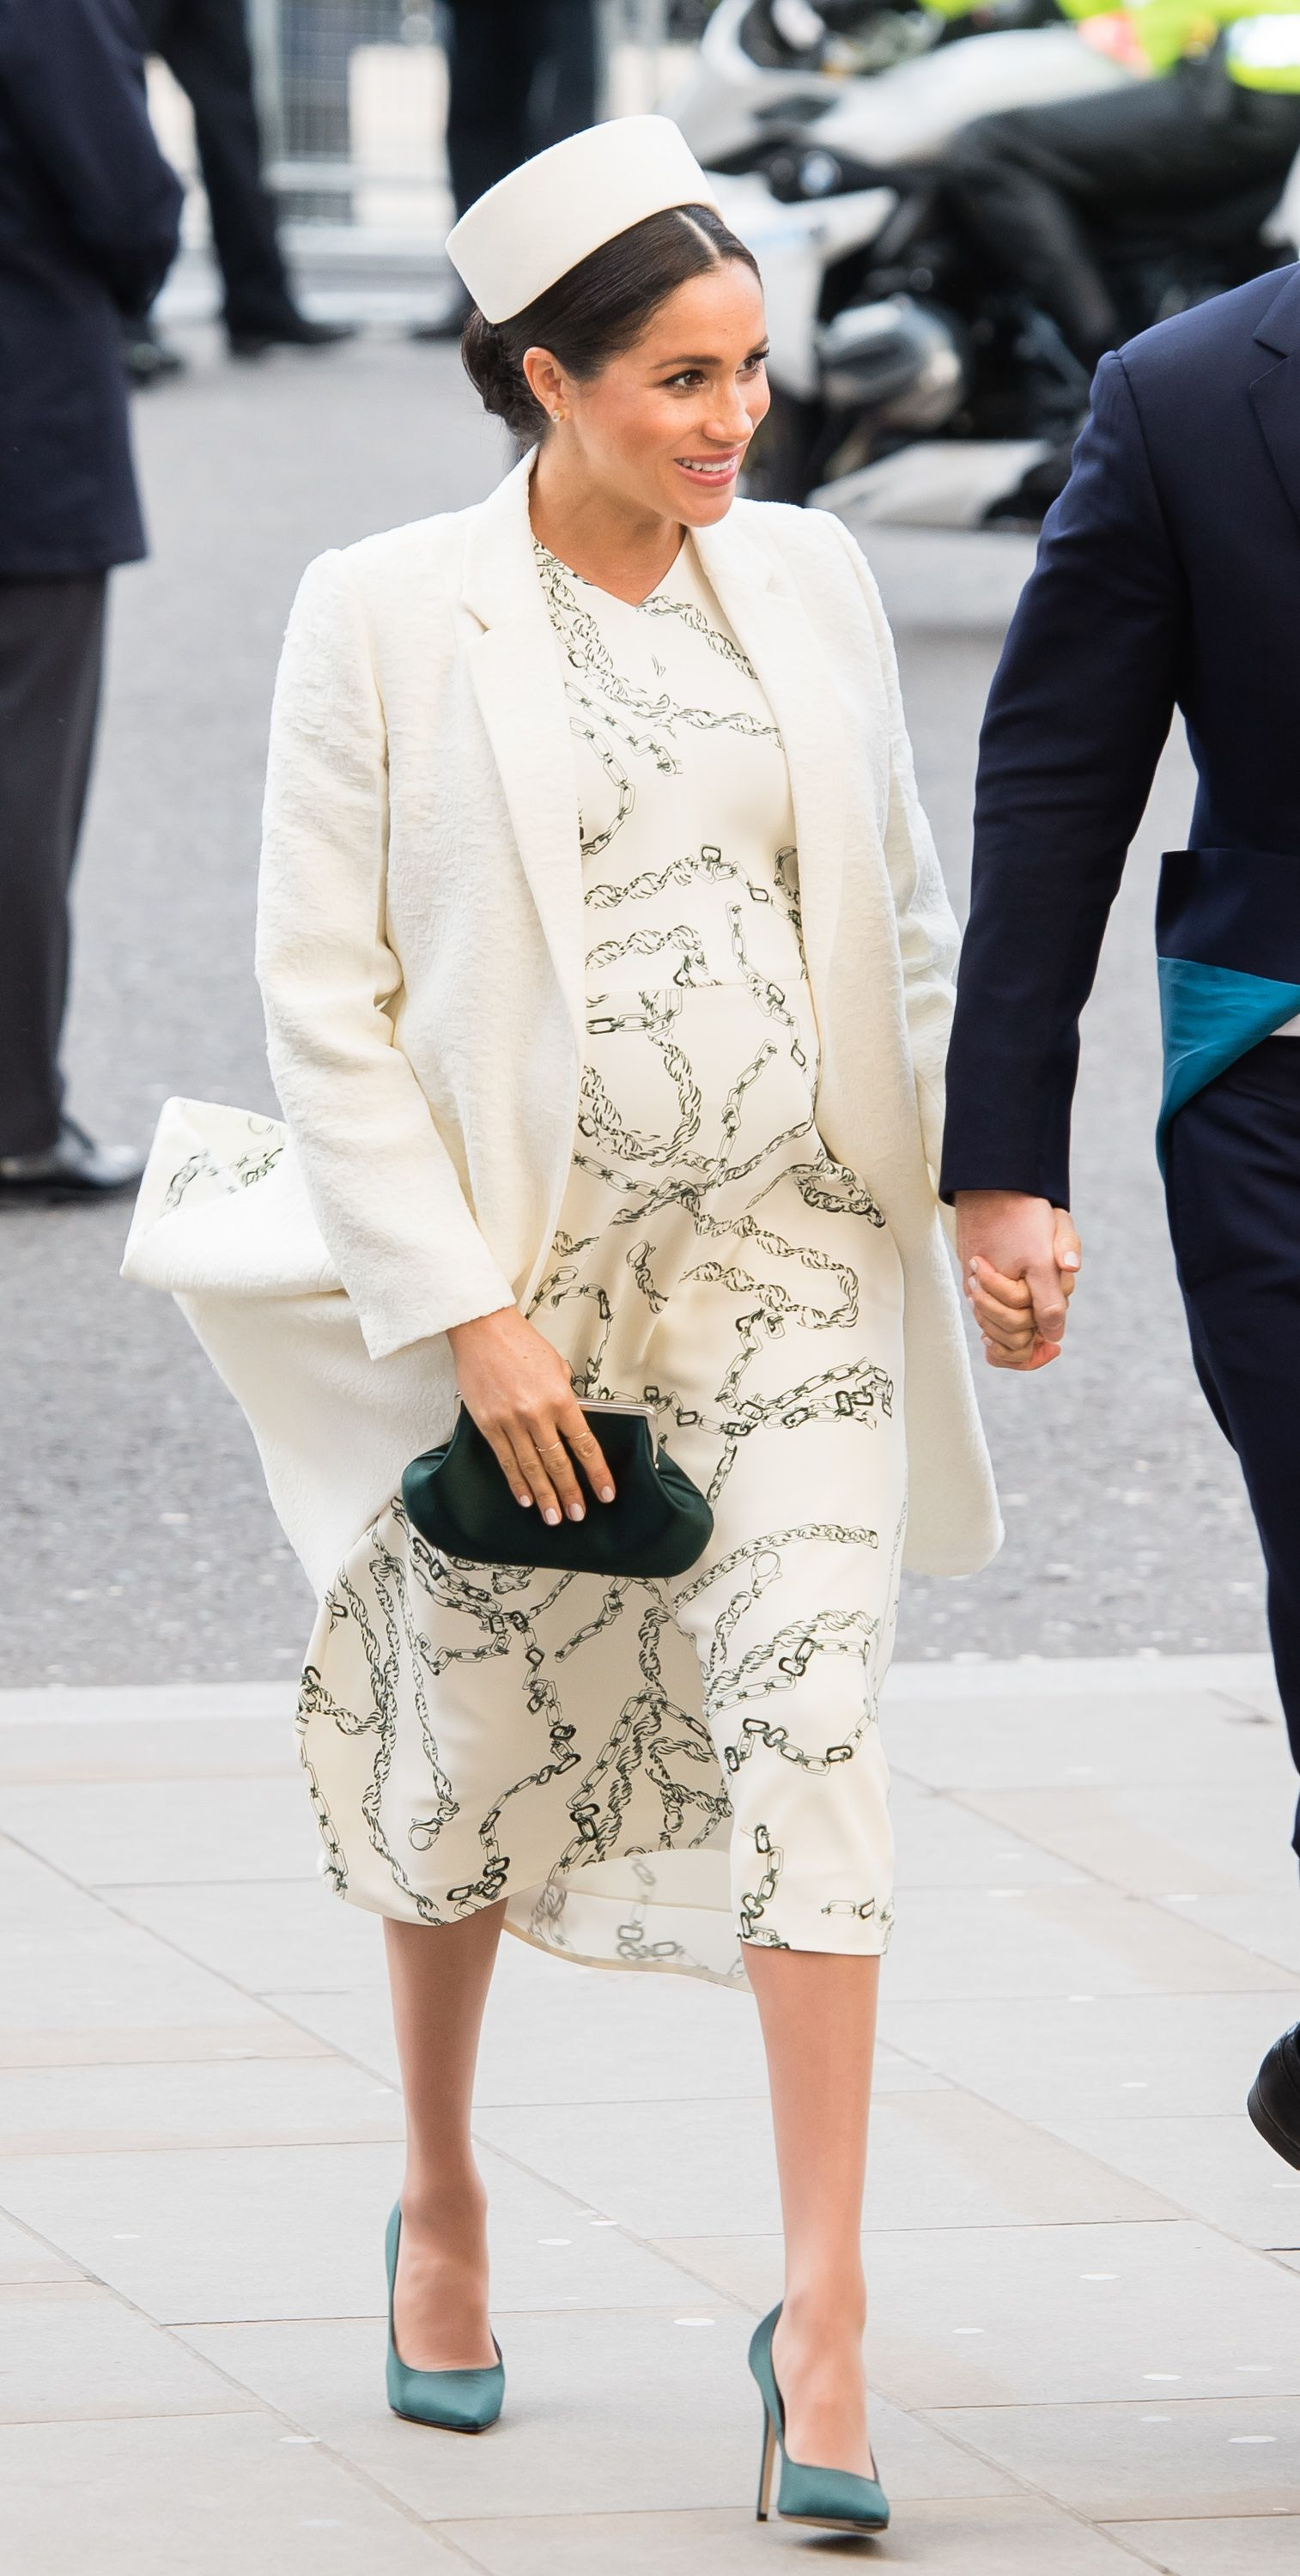 5c83351107ed2 Meghan Markle s Best Maternity Outfits - Duchess of Sussex s Chic Pregnant  Style